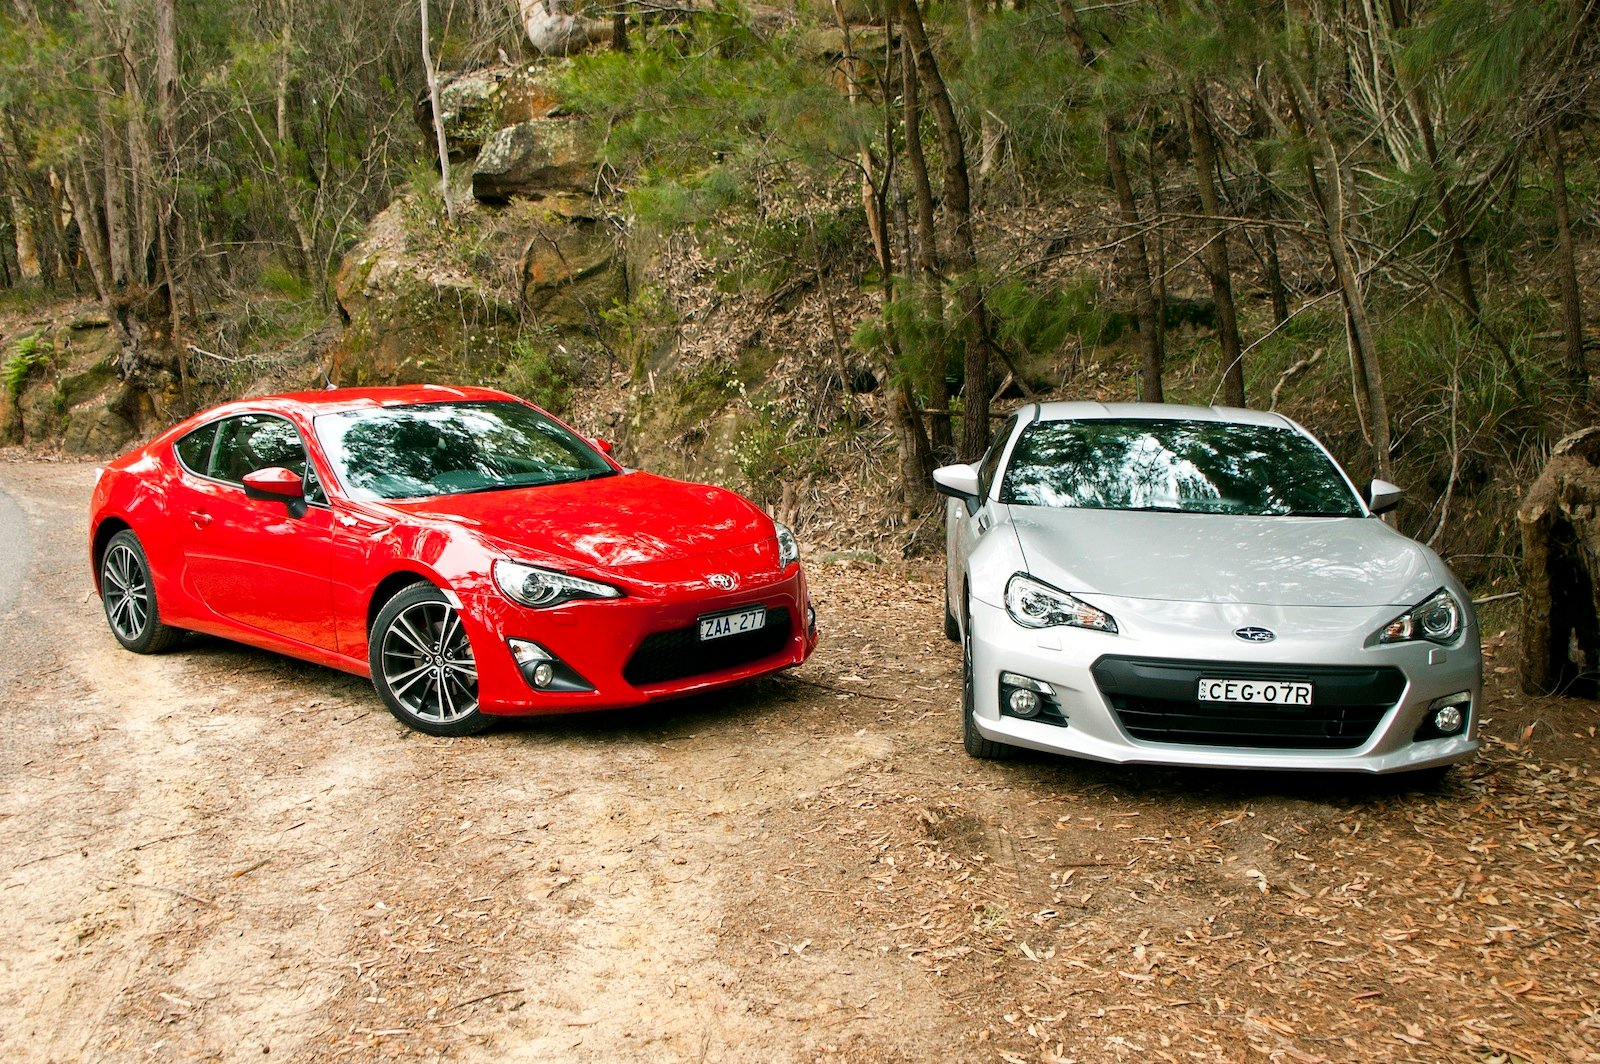 Toyota 86 Vs Subaru BRZ Comparison Review Photos